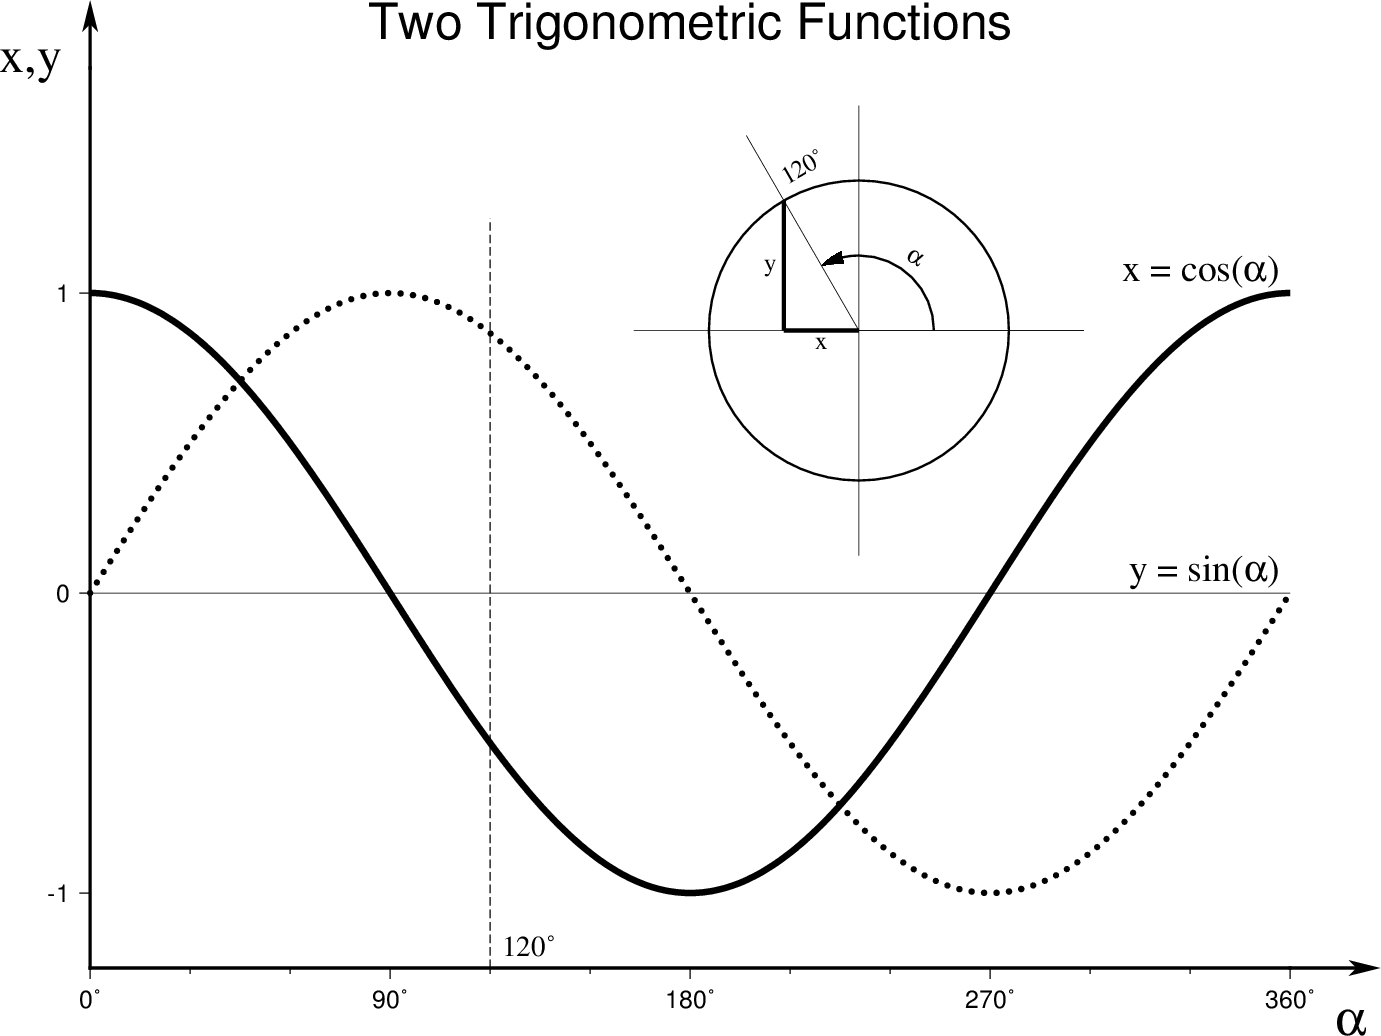 30 Trigonometric Functions Plotted In Graph Mode